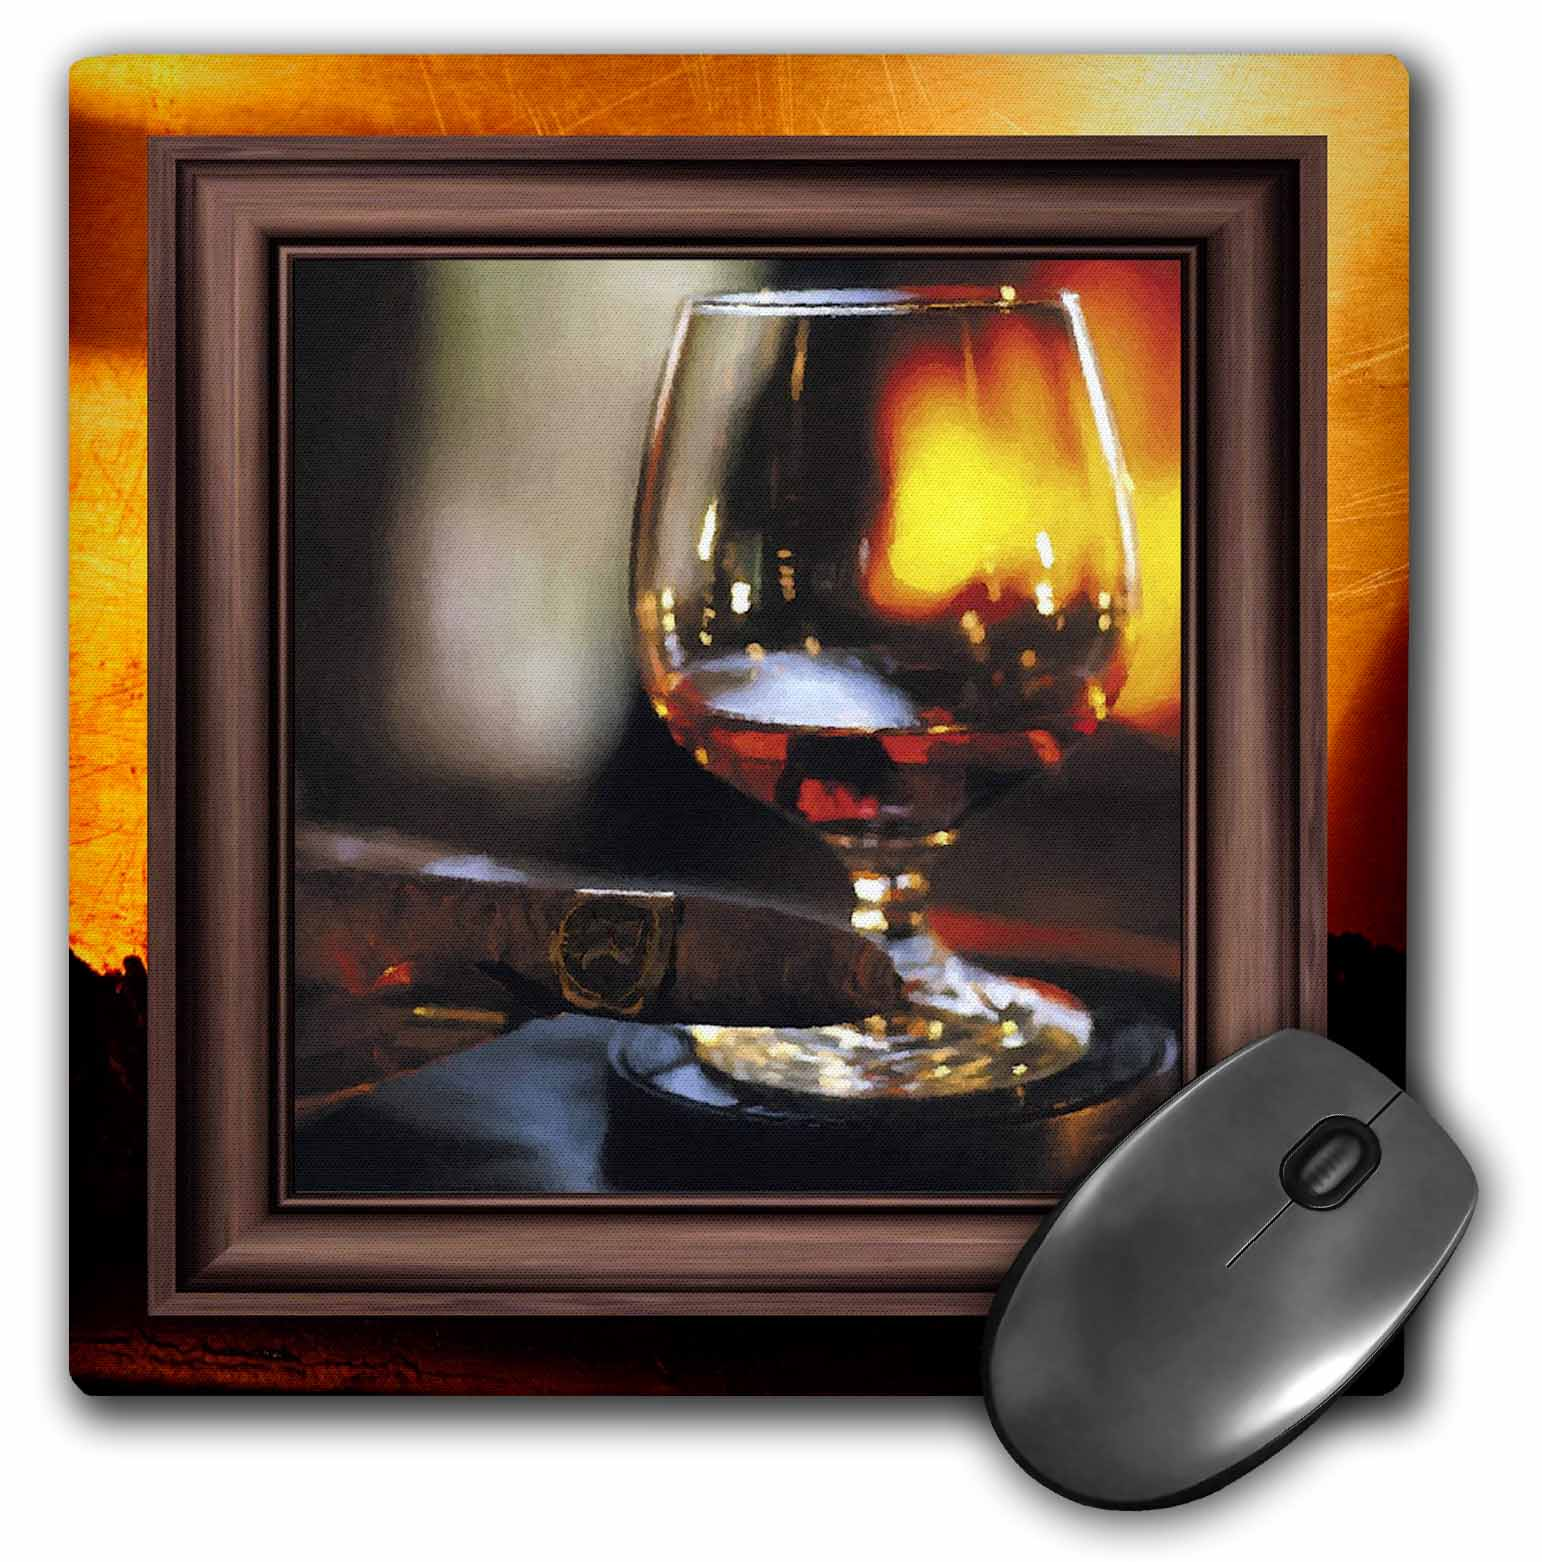 3dRose Cognac and Cuban Cigar, Mouse Pad, 8 by 8 inches